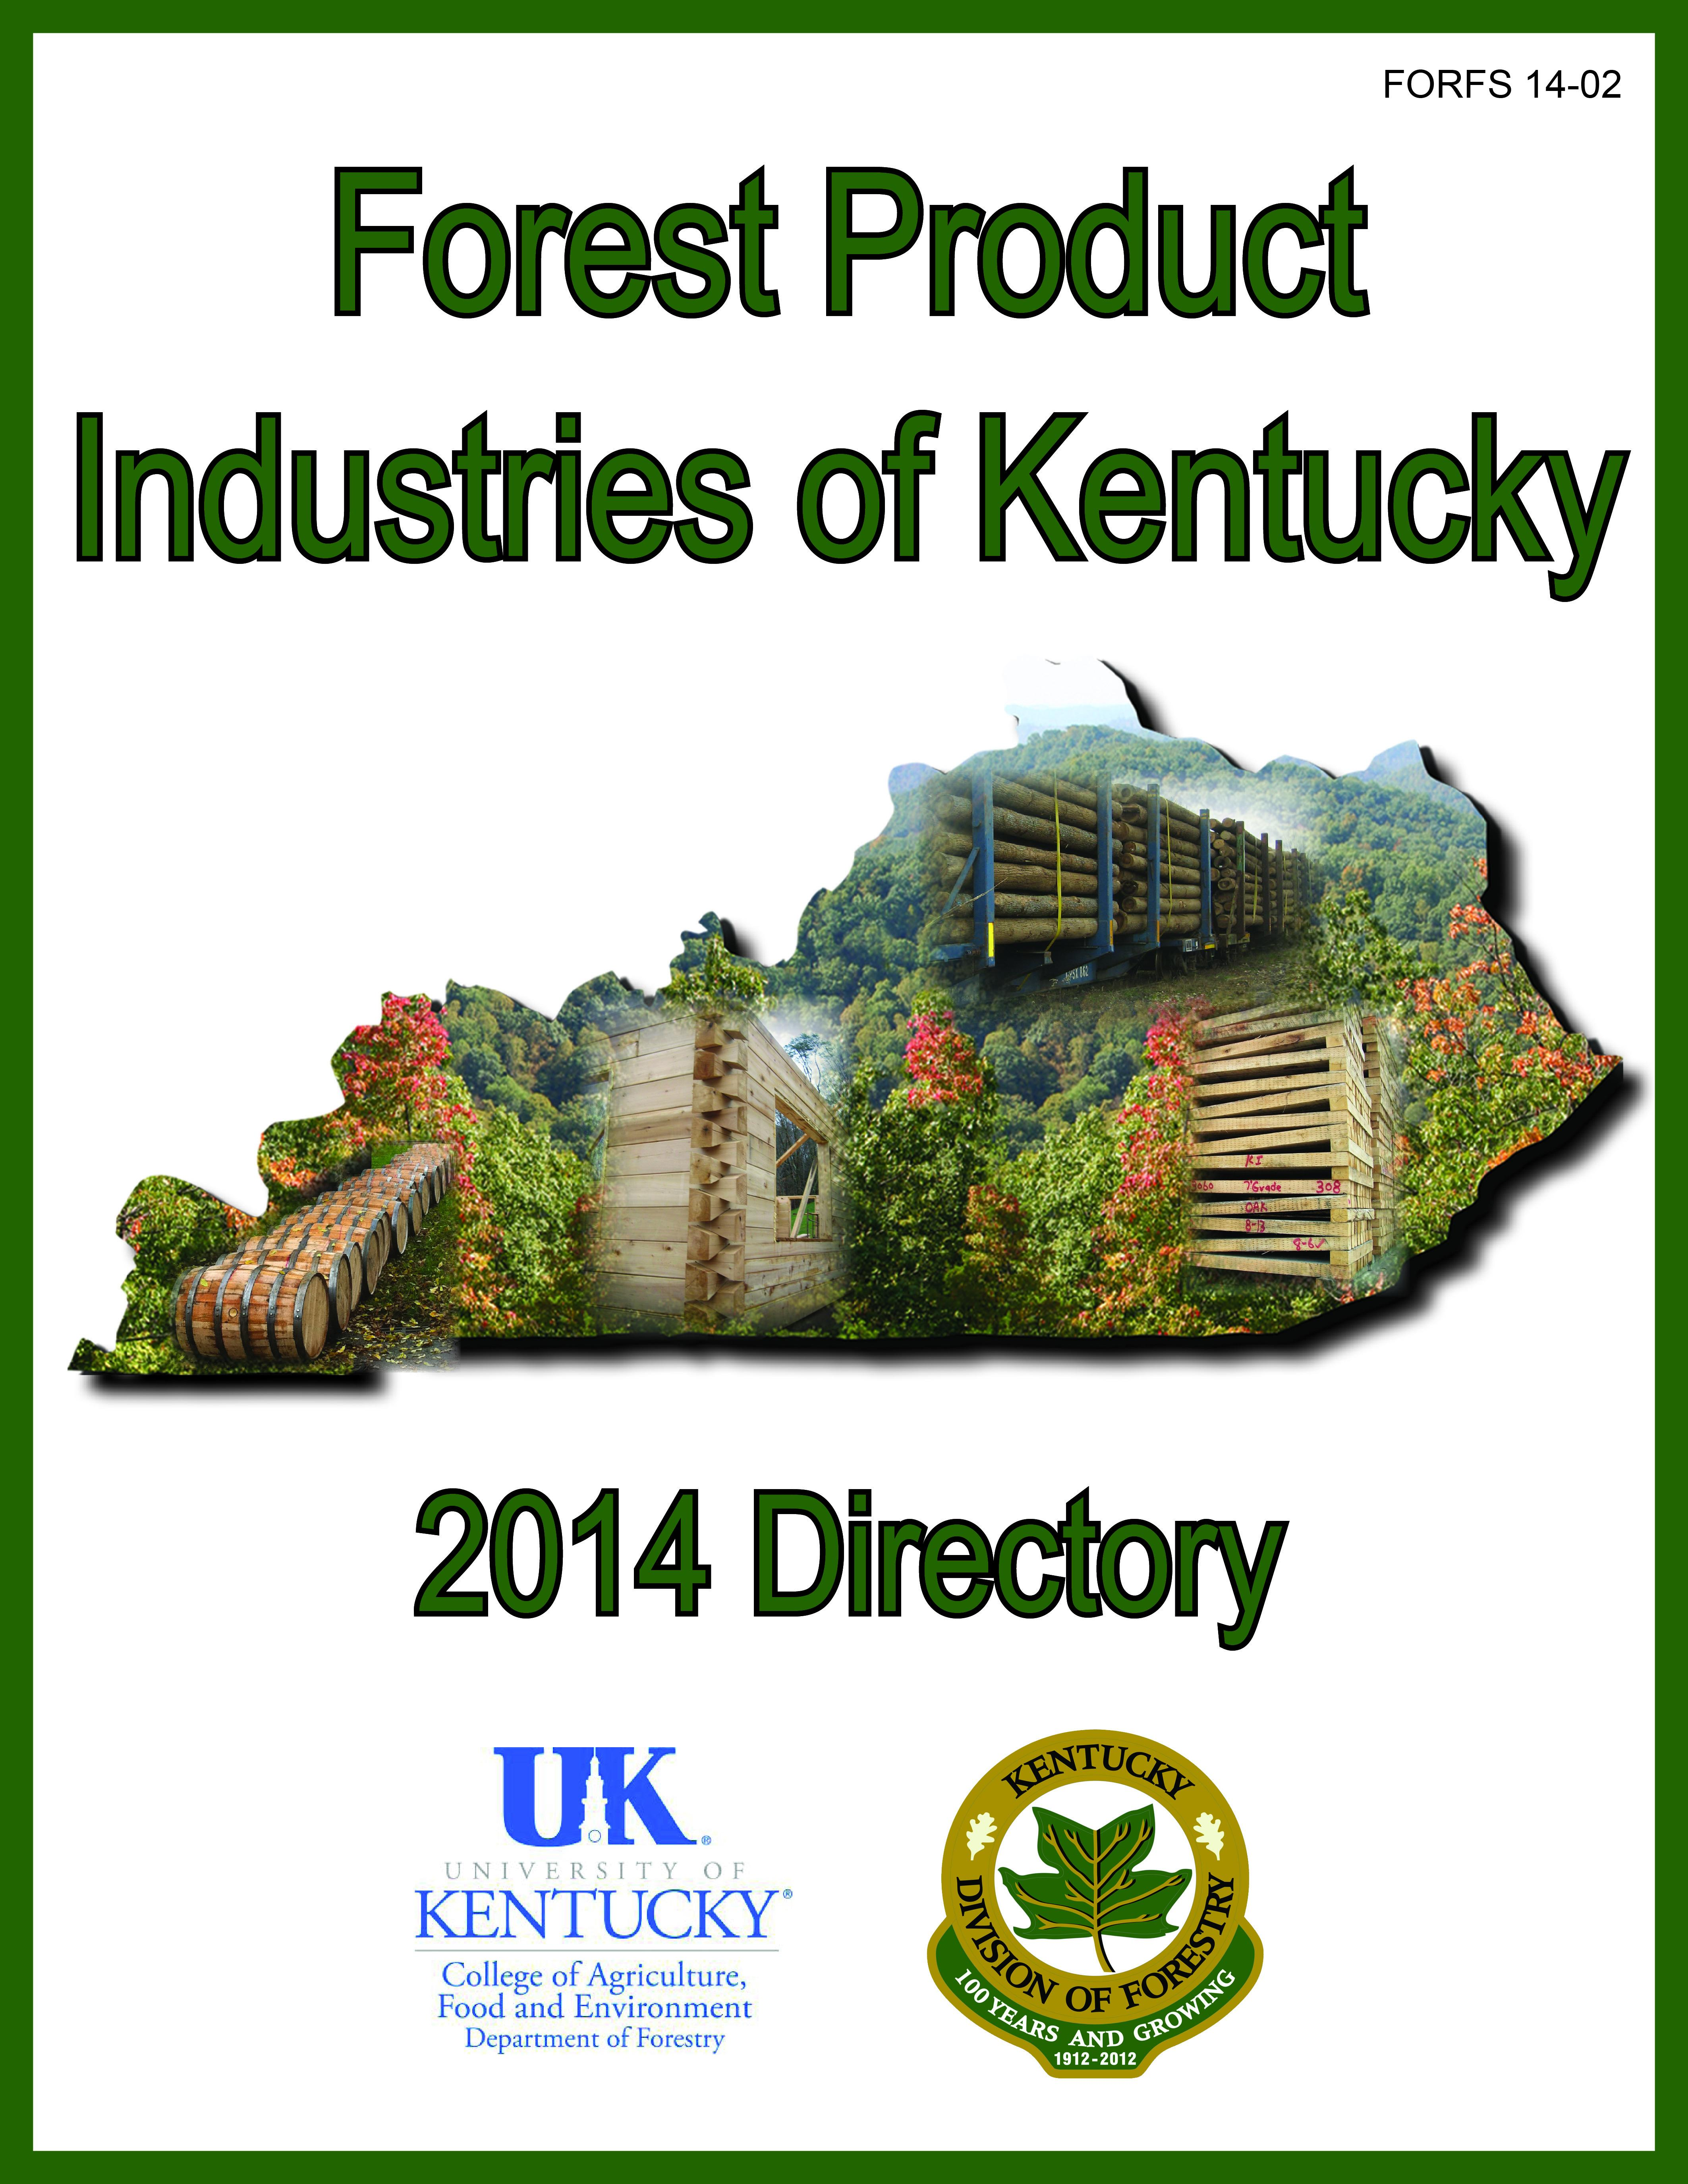 Forest Product Industries Directory